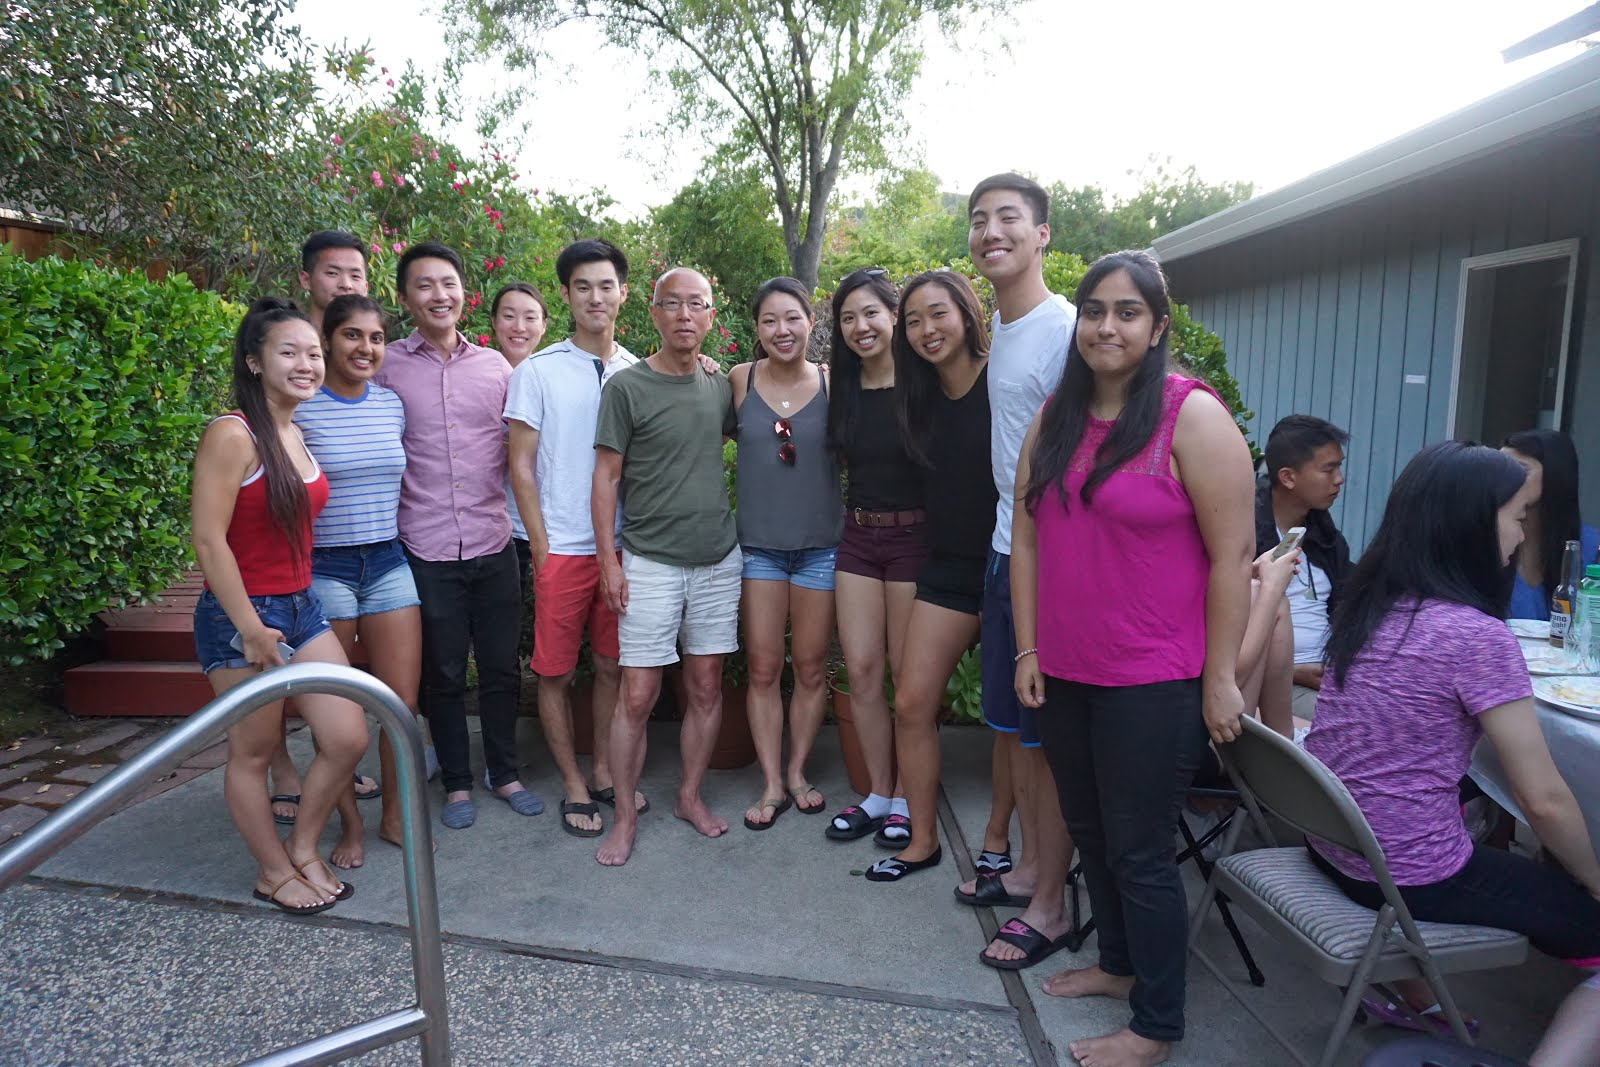 2018 Summer party at Erica's